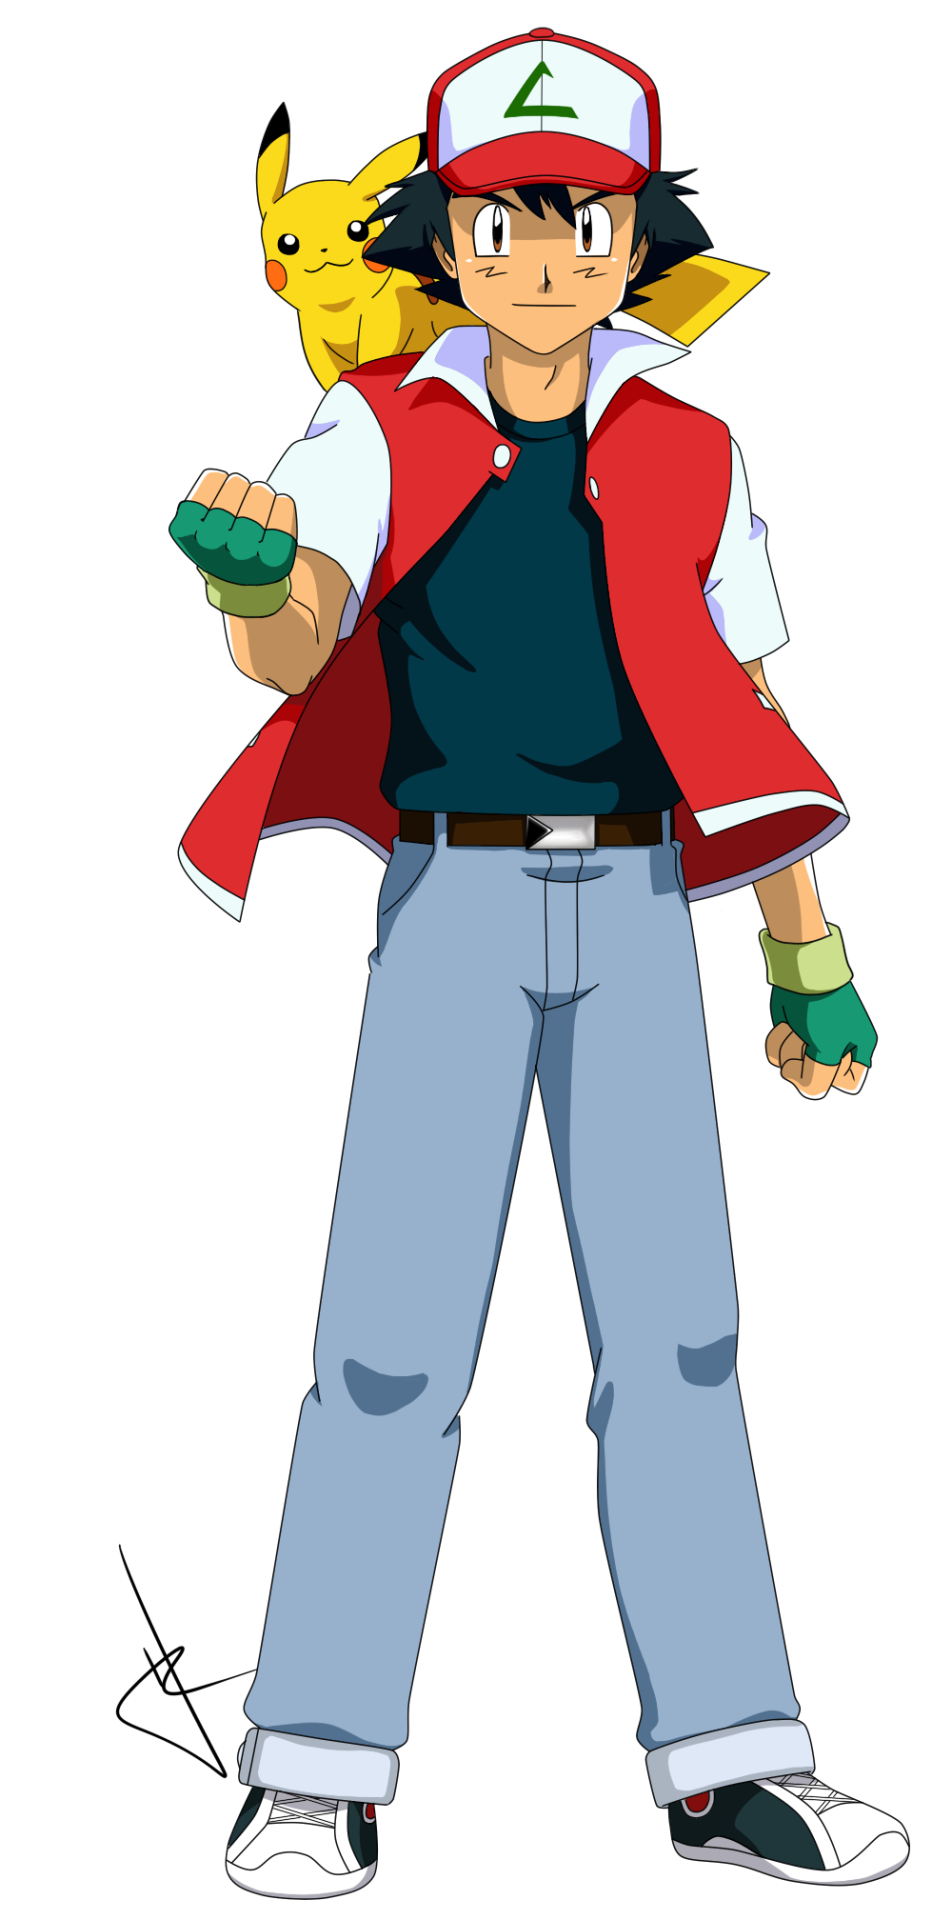 Hollylu Pokeship Art Commissioned By Mezasepkmnmaster Request 16 Year Old Ash Ketchum For His Fanfic S Pokemon Ash And Serena Pokemon Pictures Ash Ketchum